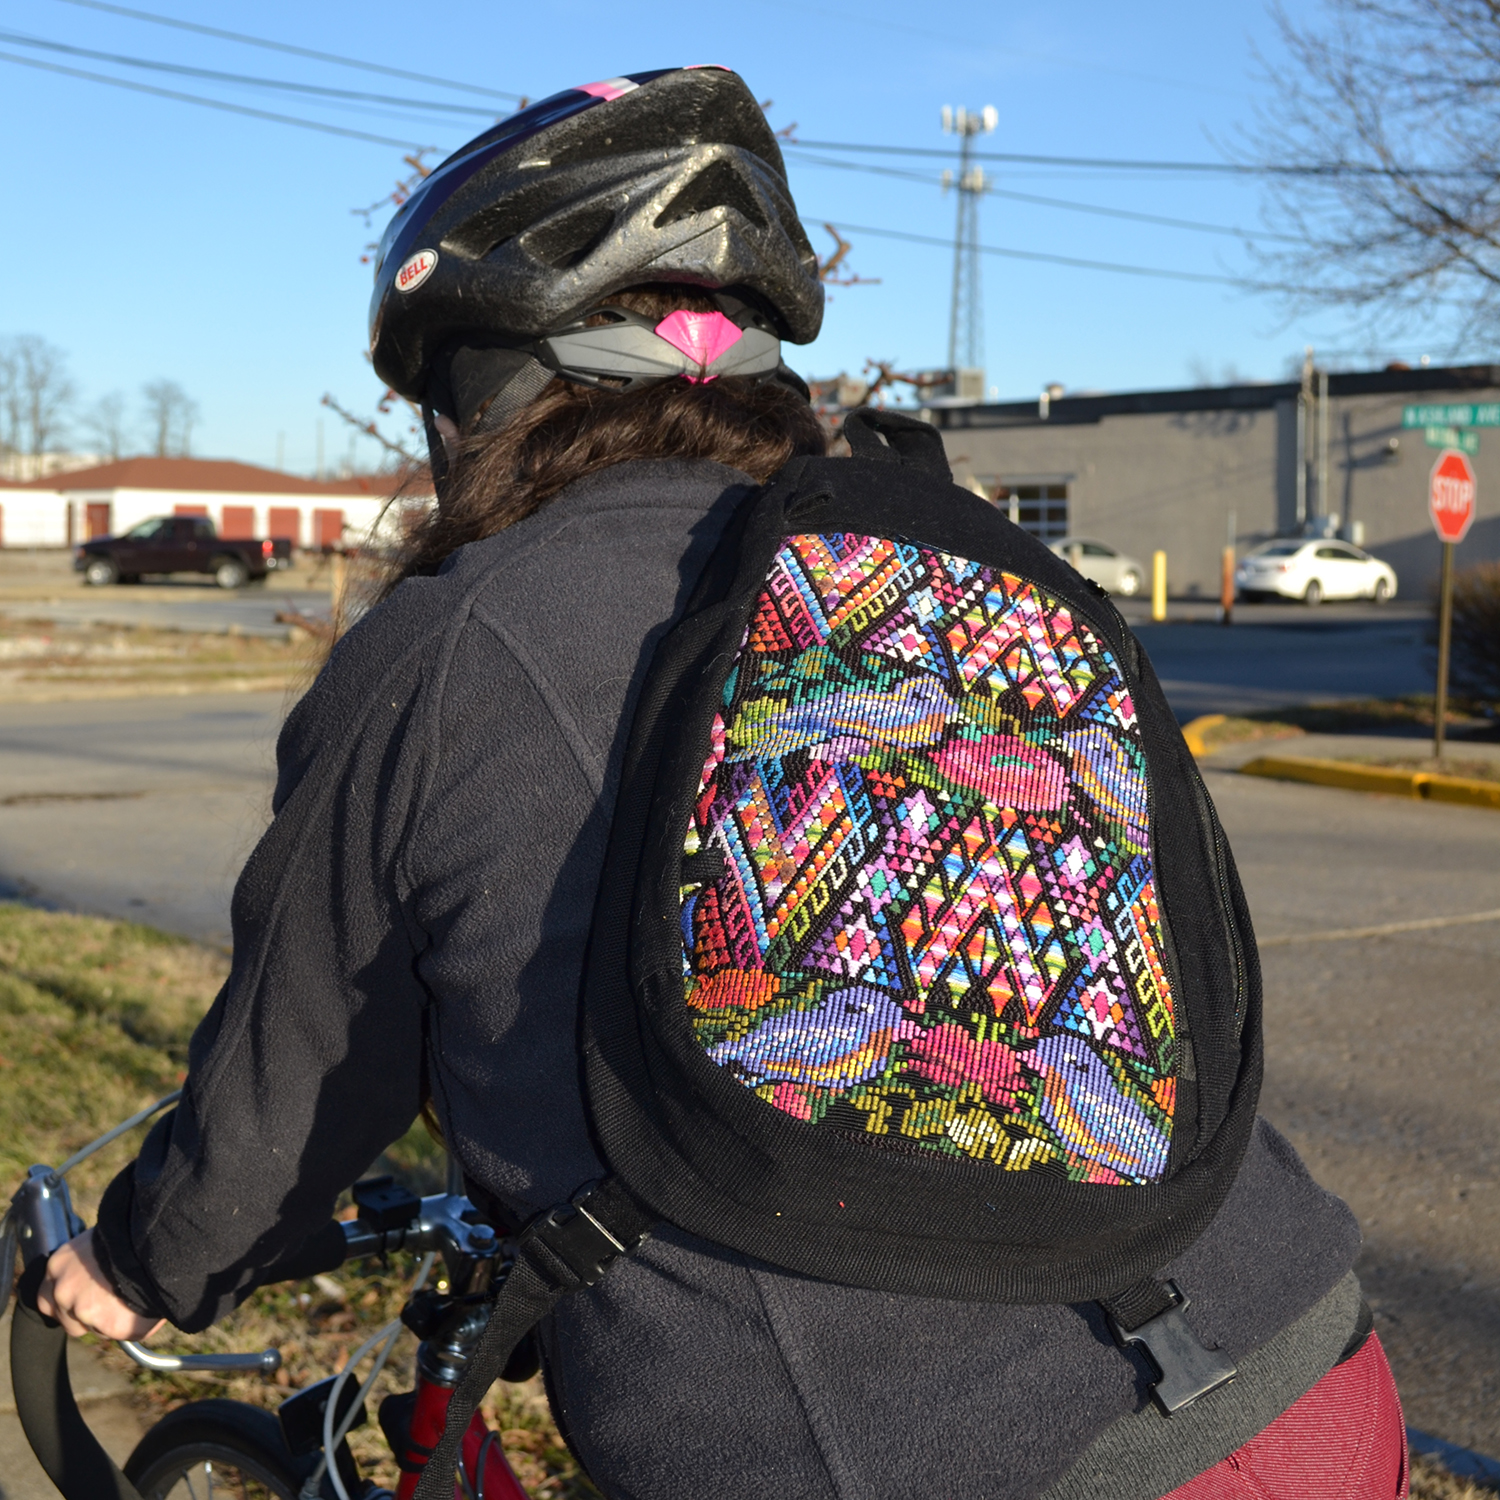 Bike messenger backpack on a cyclist